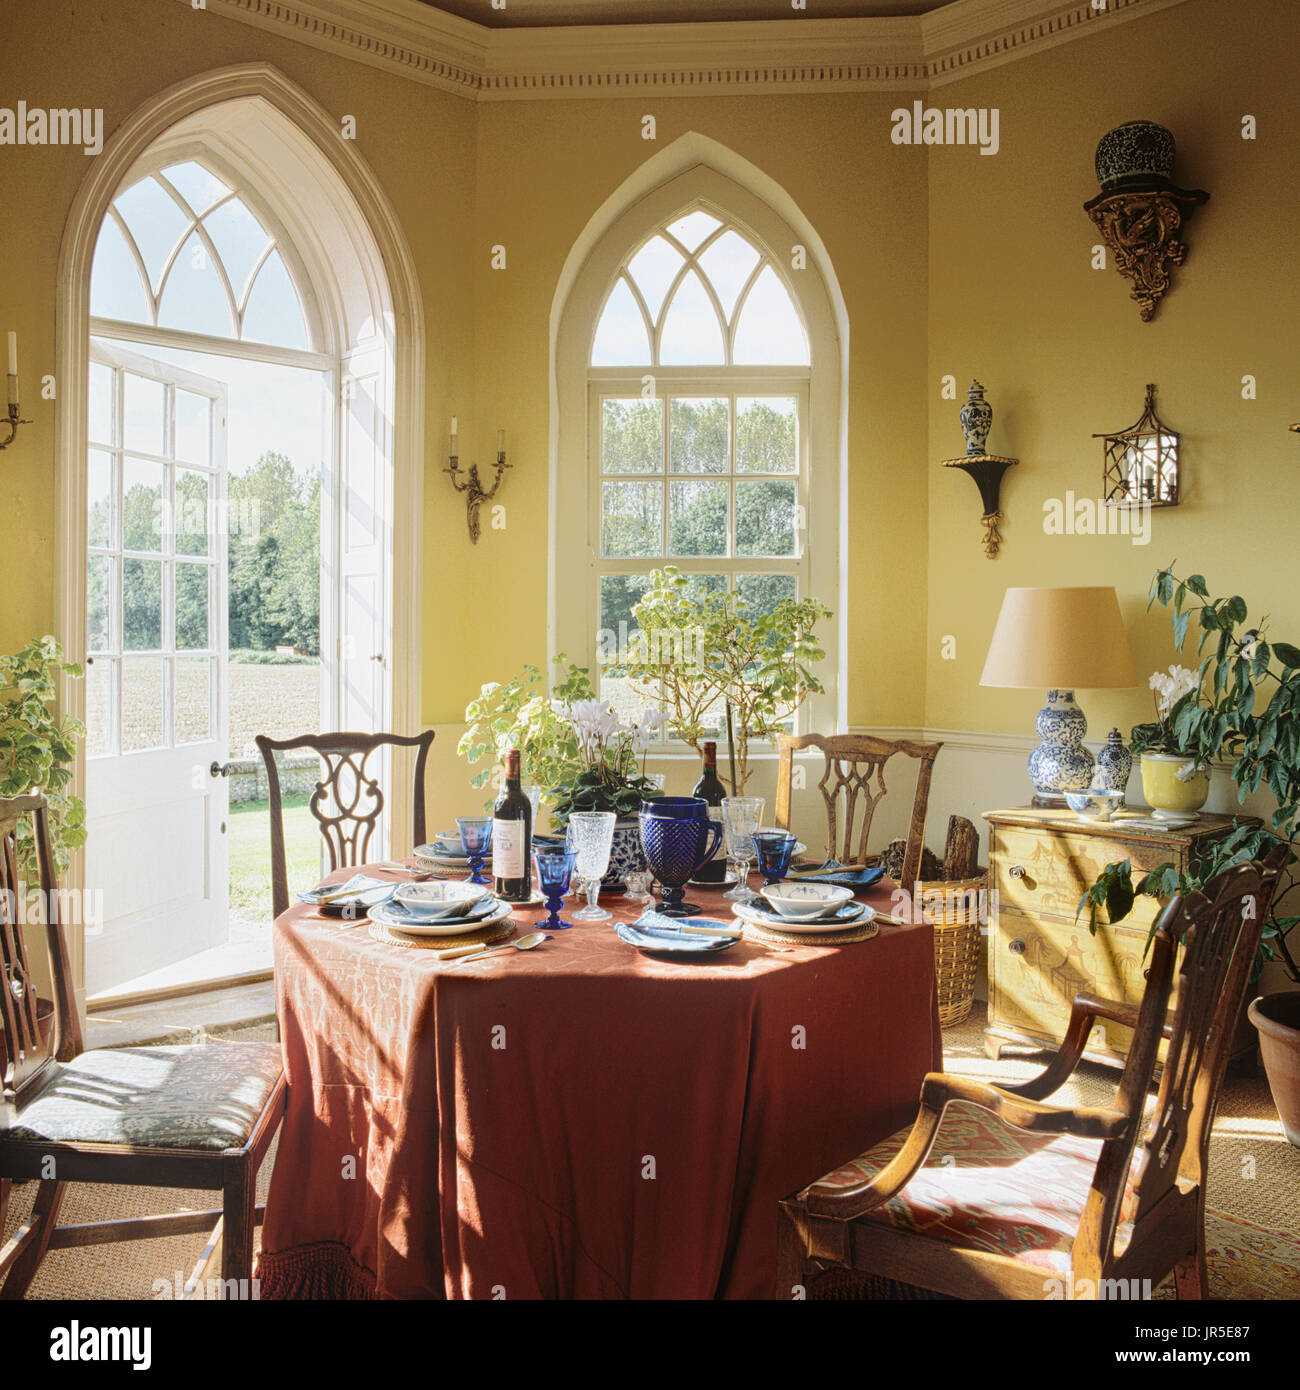 Dining Room With Gothic Style Windows